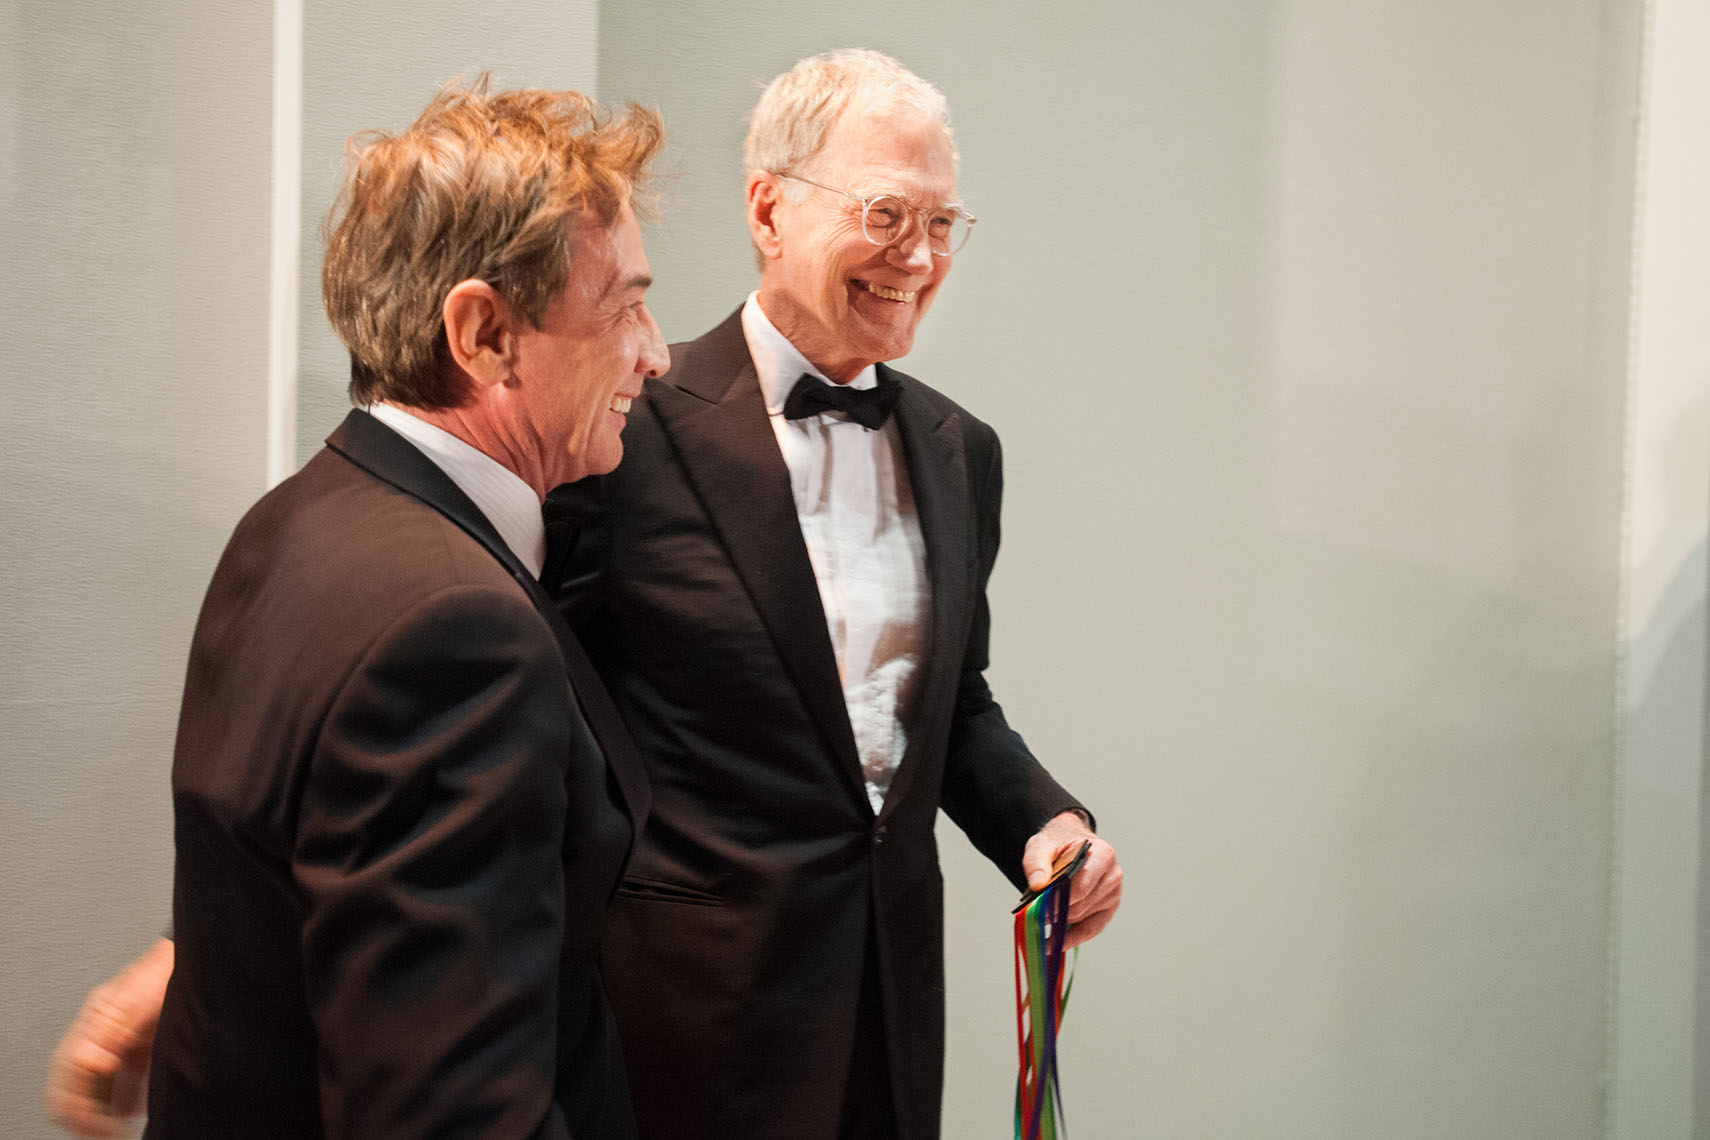 Martin Short and David Letterman